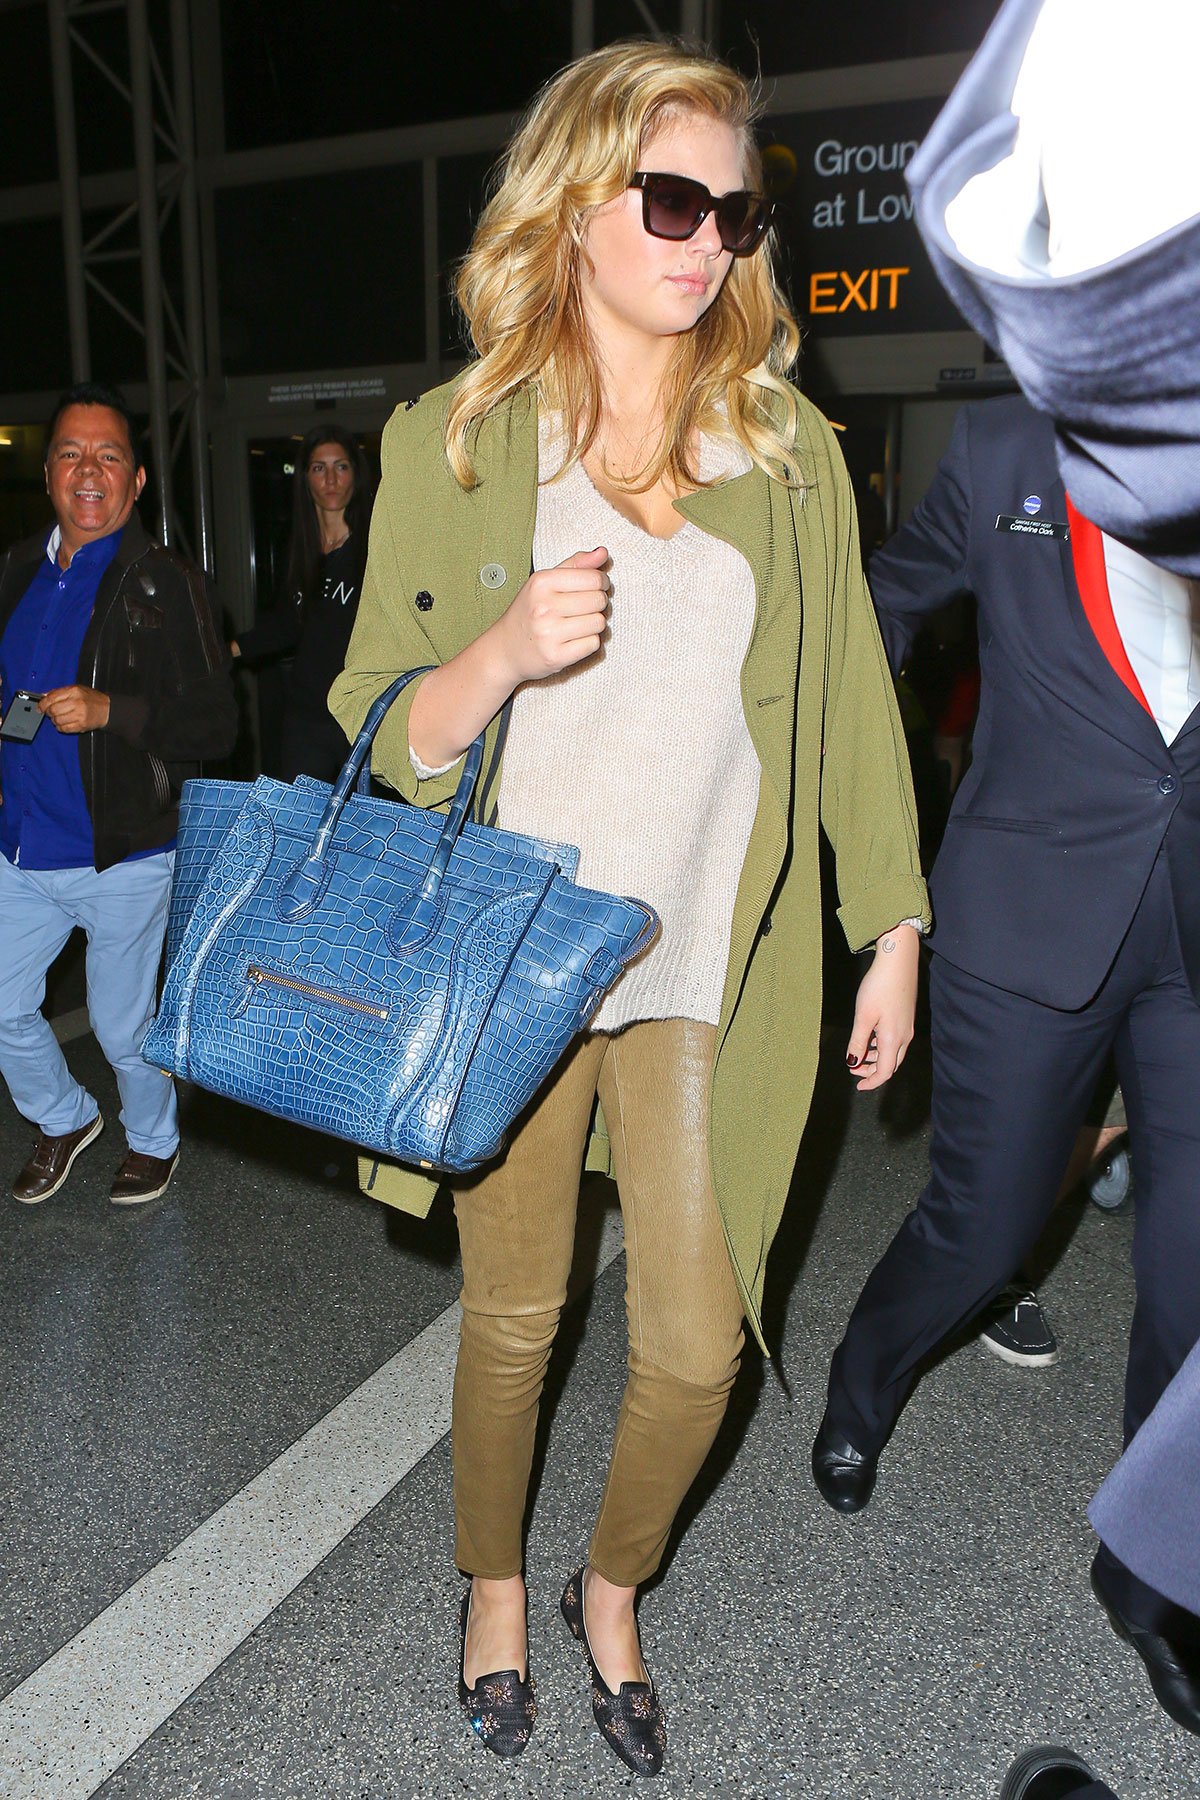 Kate Upton at LAX Airport in LA